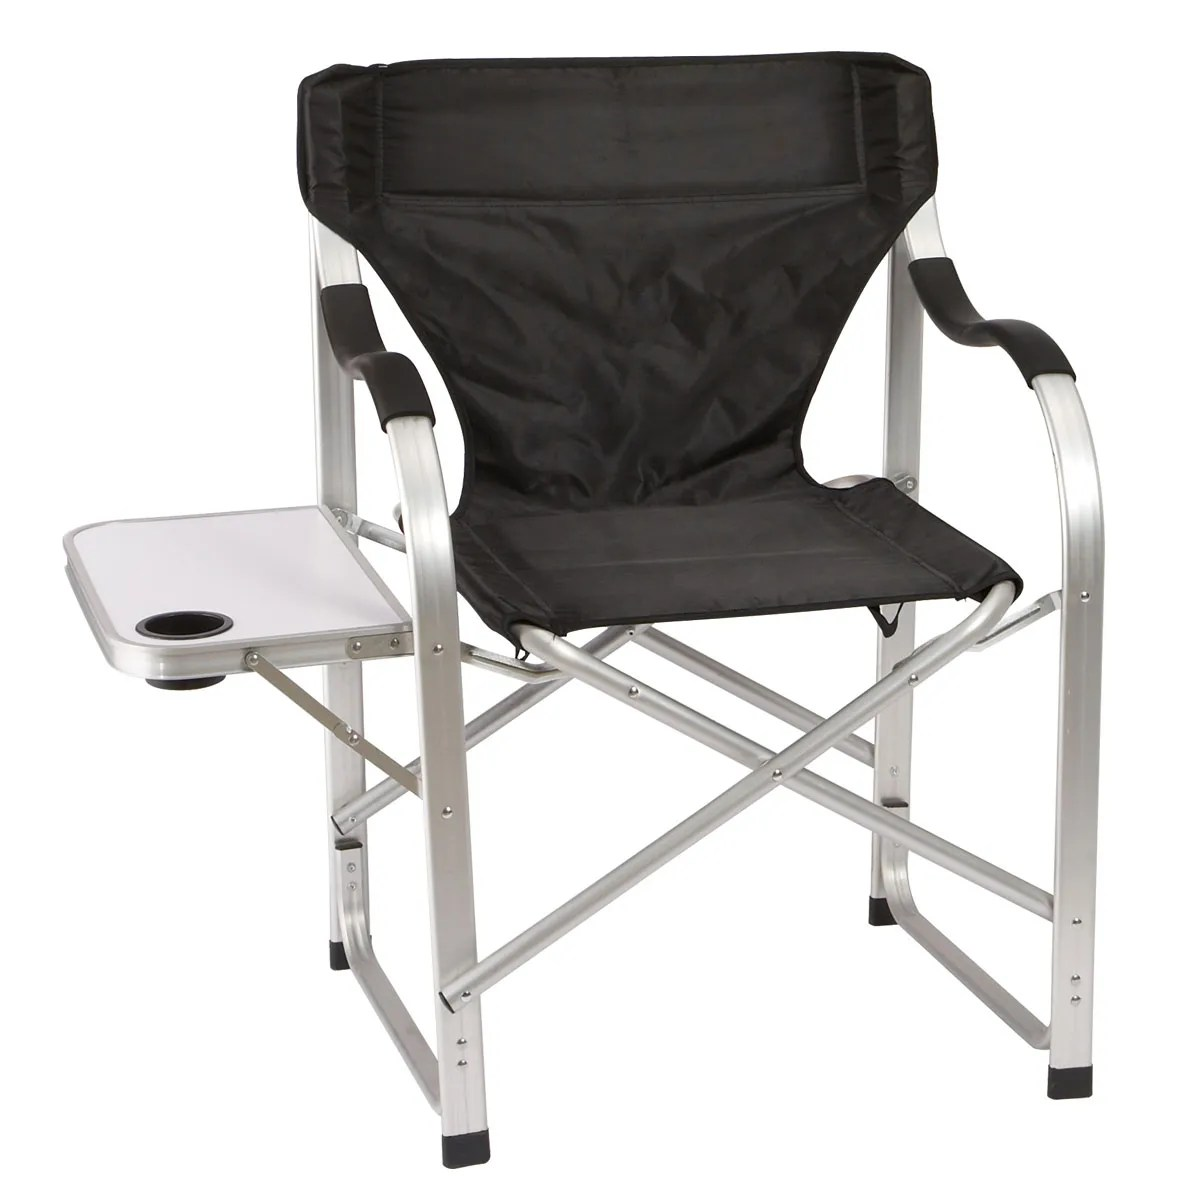 Foldable Lawn Chairs Heavy Duty Collapsible Lawn Chair